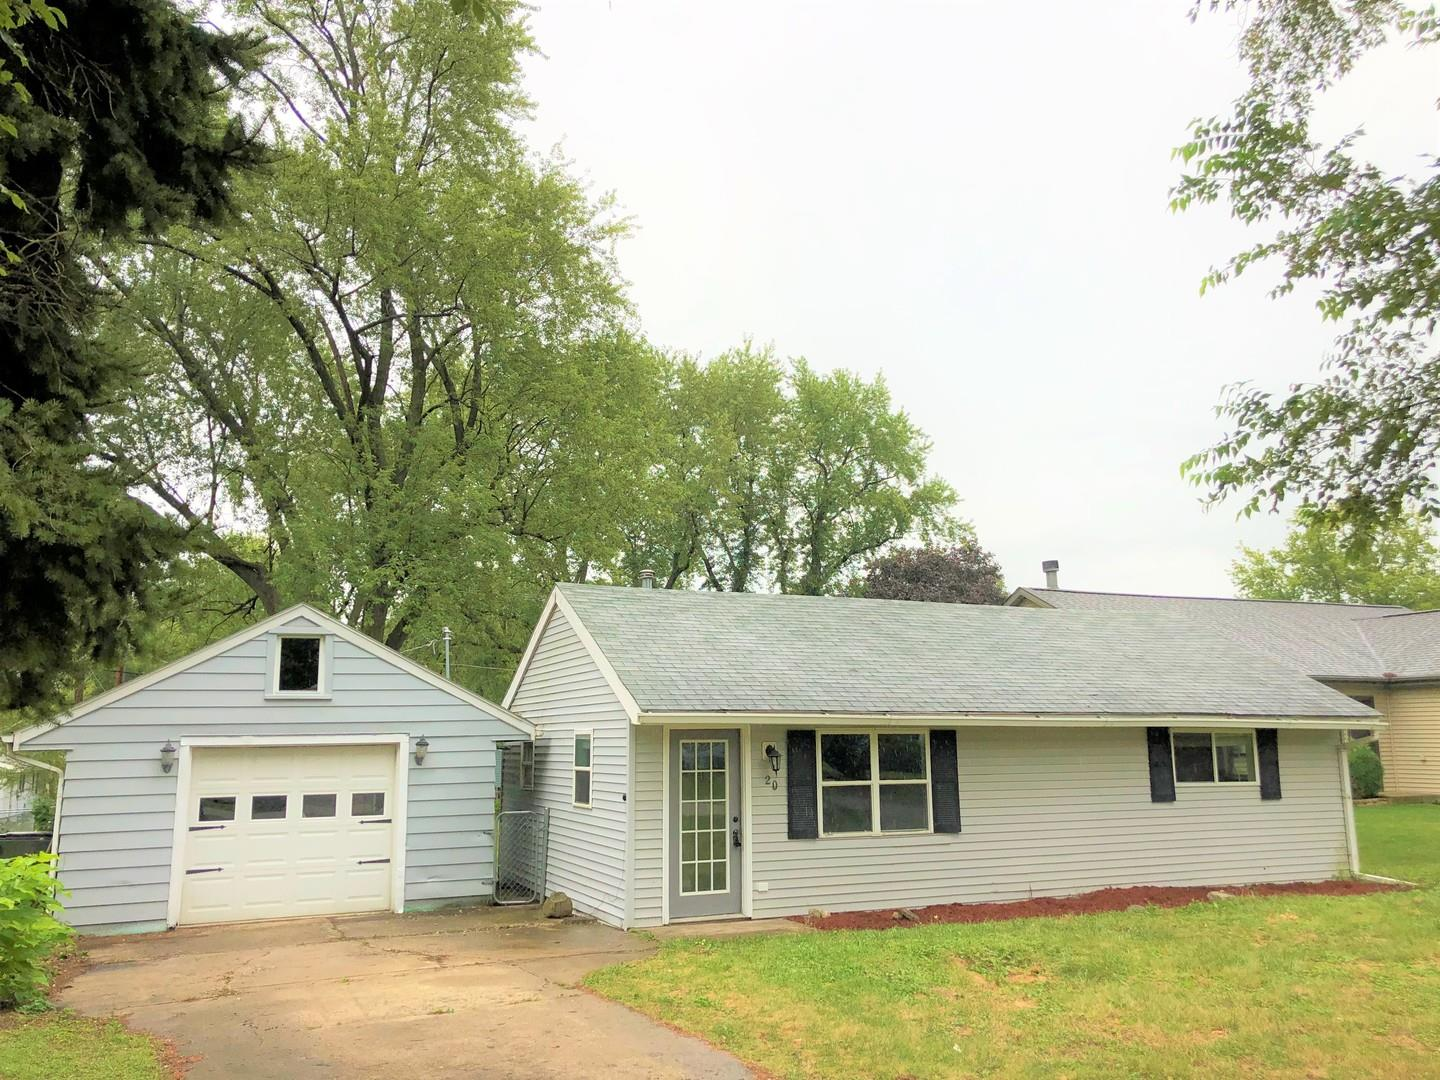 20 Wander Way, Lake in the Hills, IL 60156 - #: 10854106